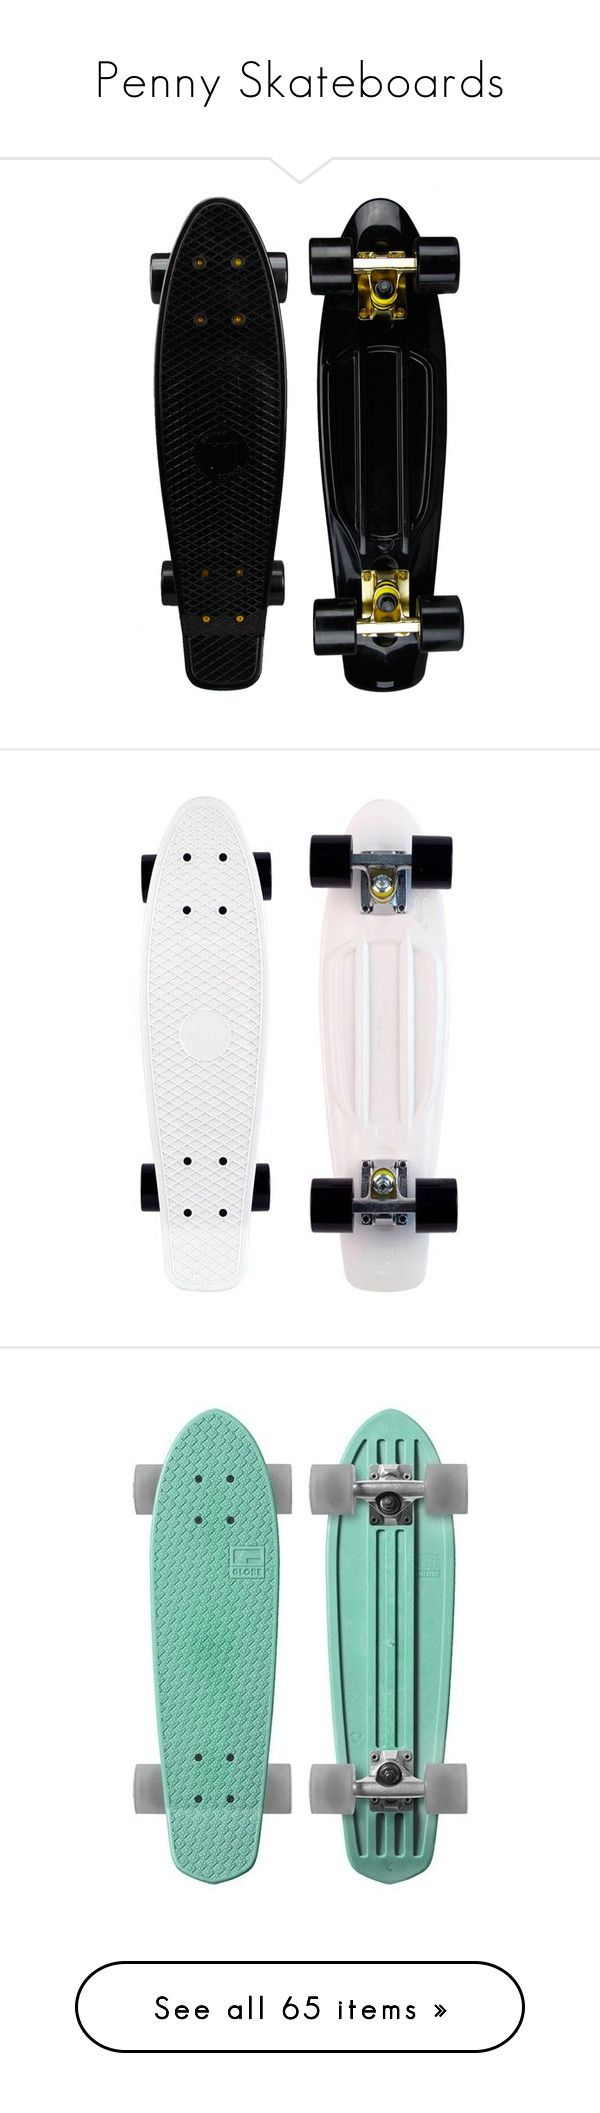 Penny Skateboards By Janettetang Liked On Polyvore Featuring Fillers Accessories